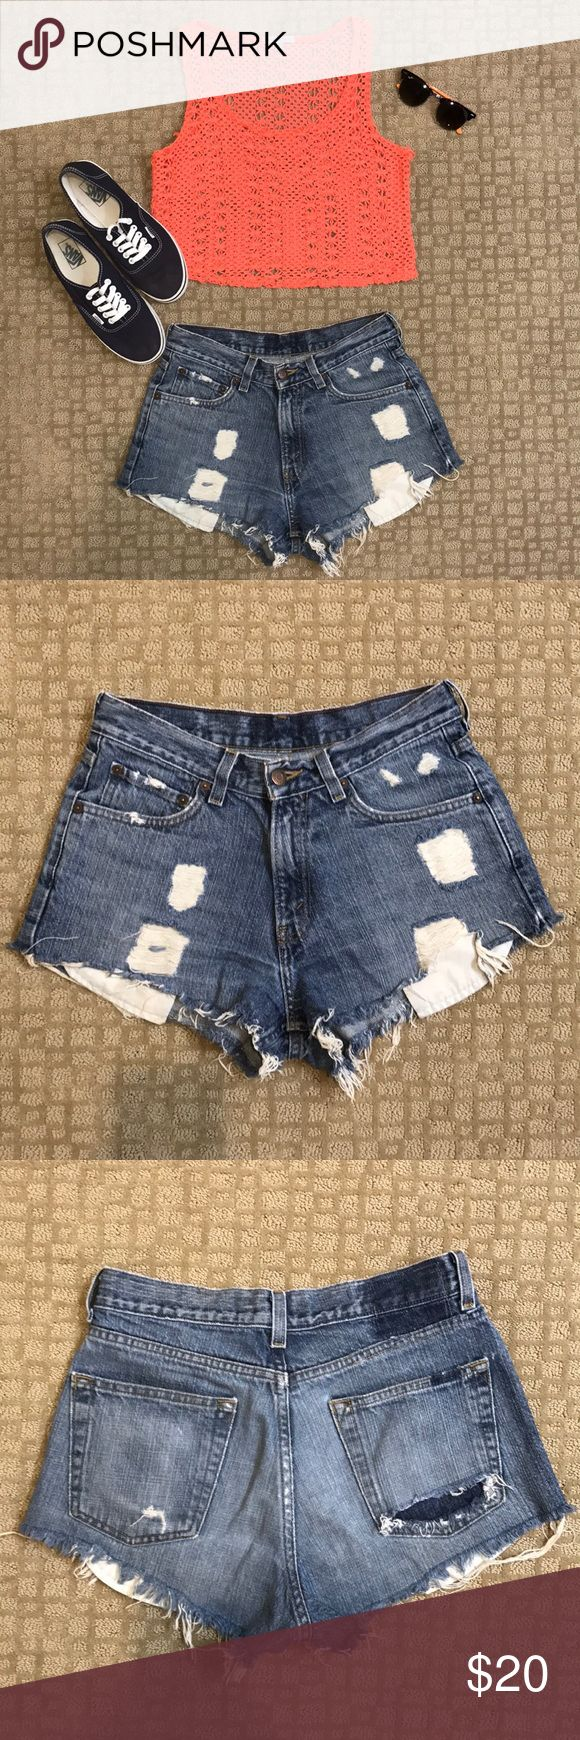 High waisted jean shorts Urban Outfitters high waisted jean shorts size 6. They're a part of their reclaimed/recycled line so there is no size tag Urban Outfitters Shorts Jean Shorts